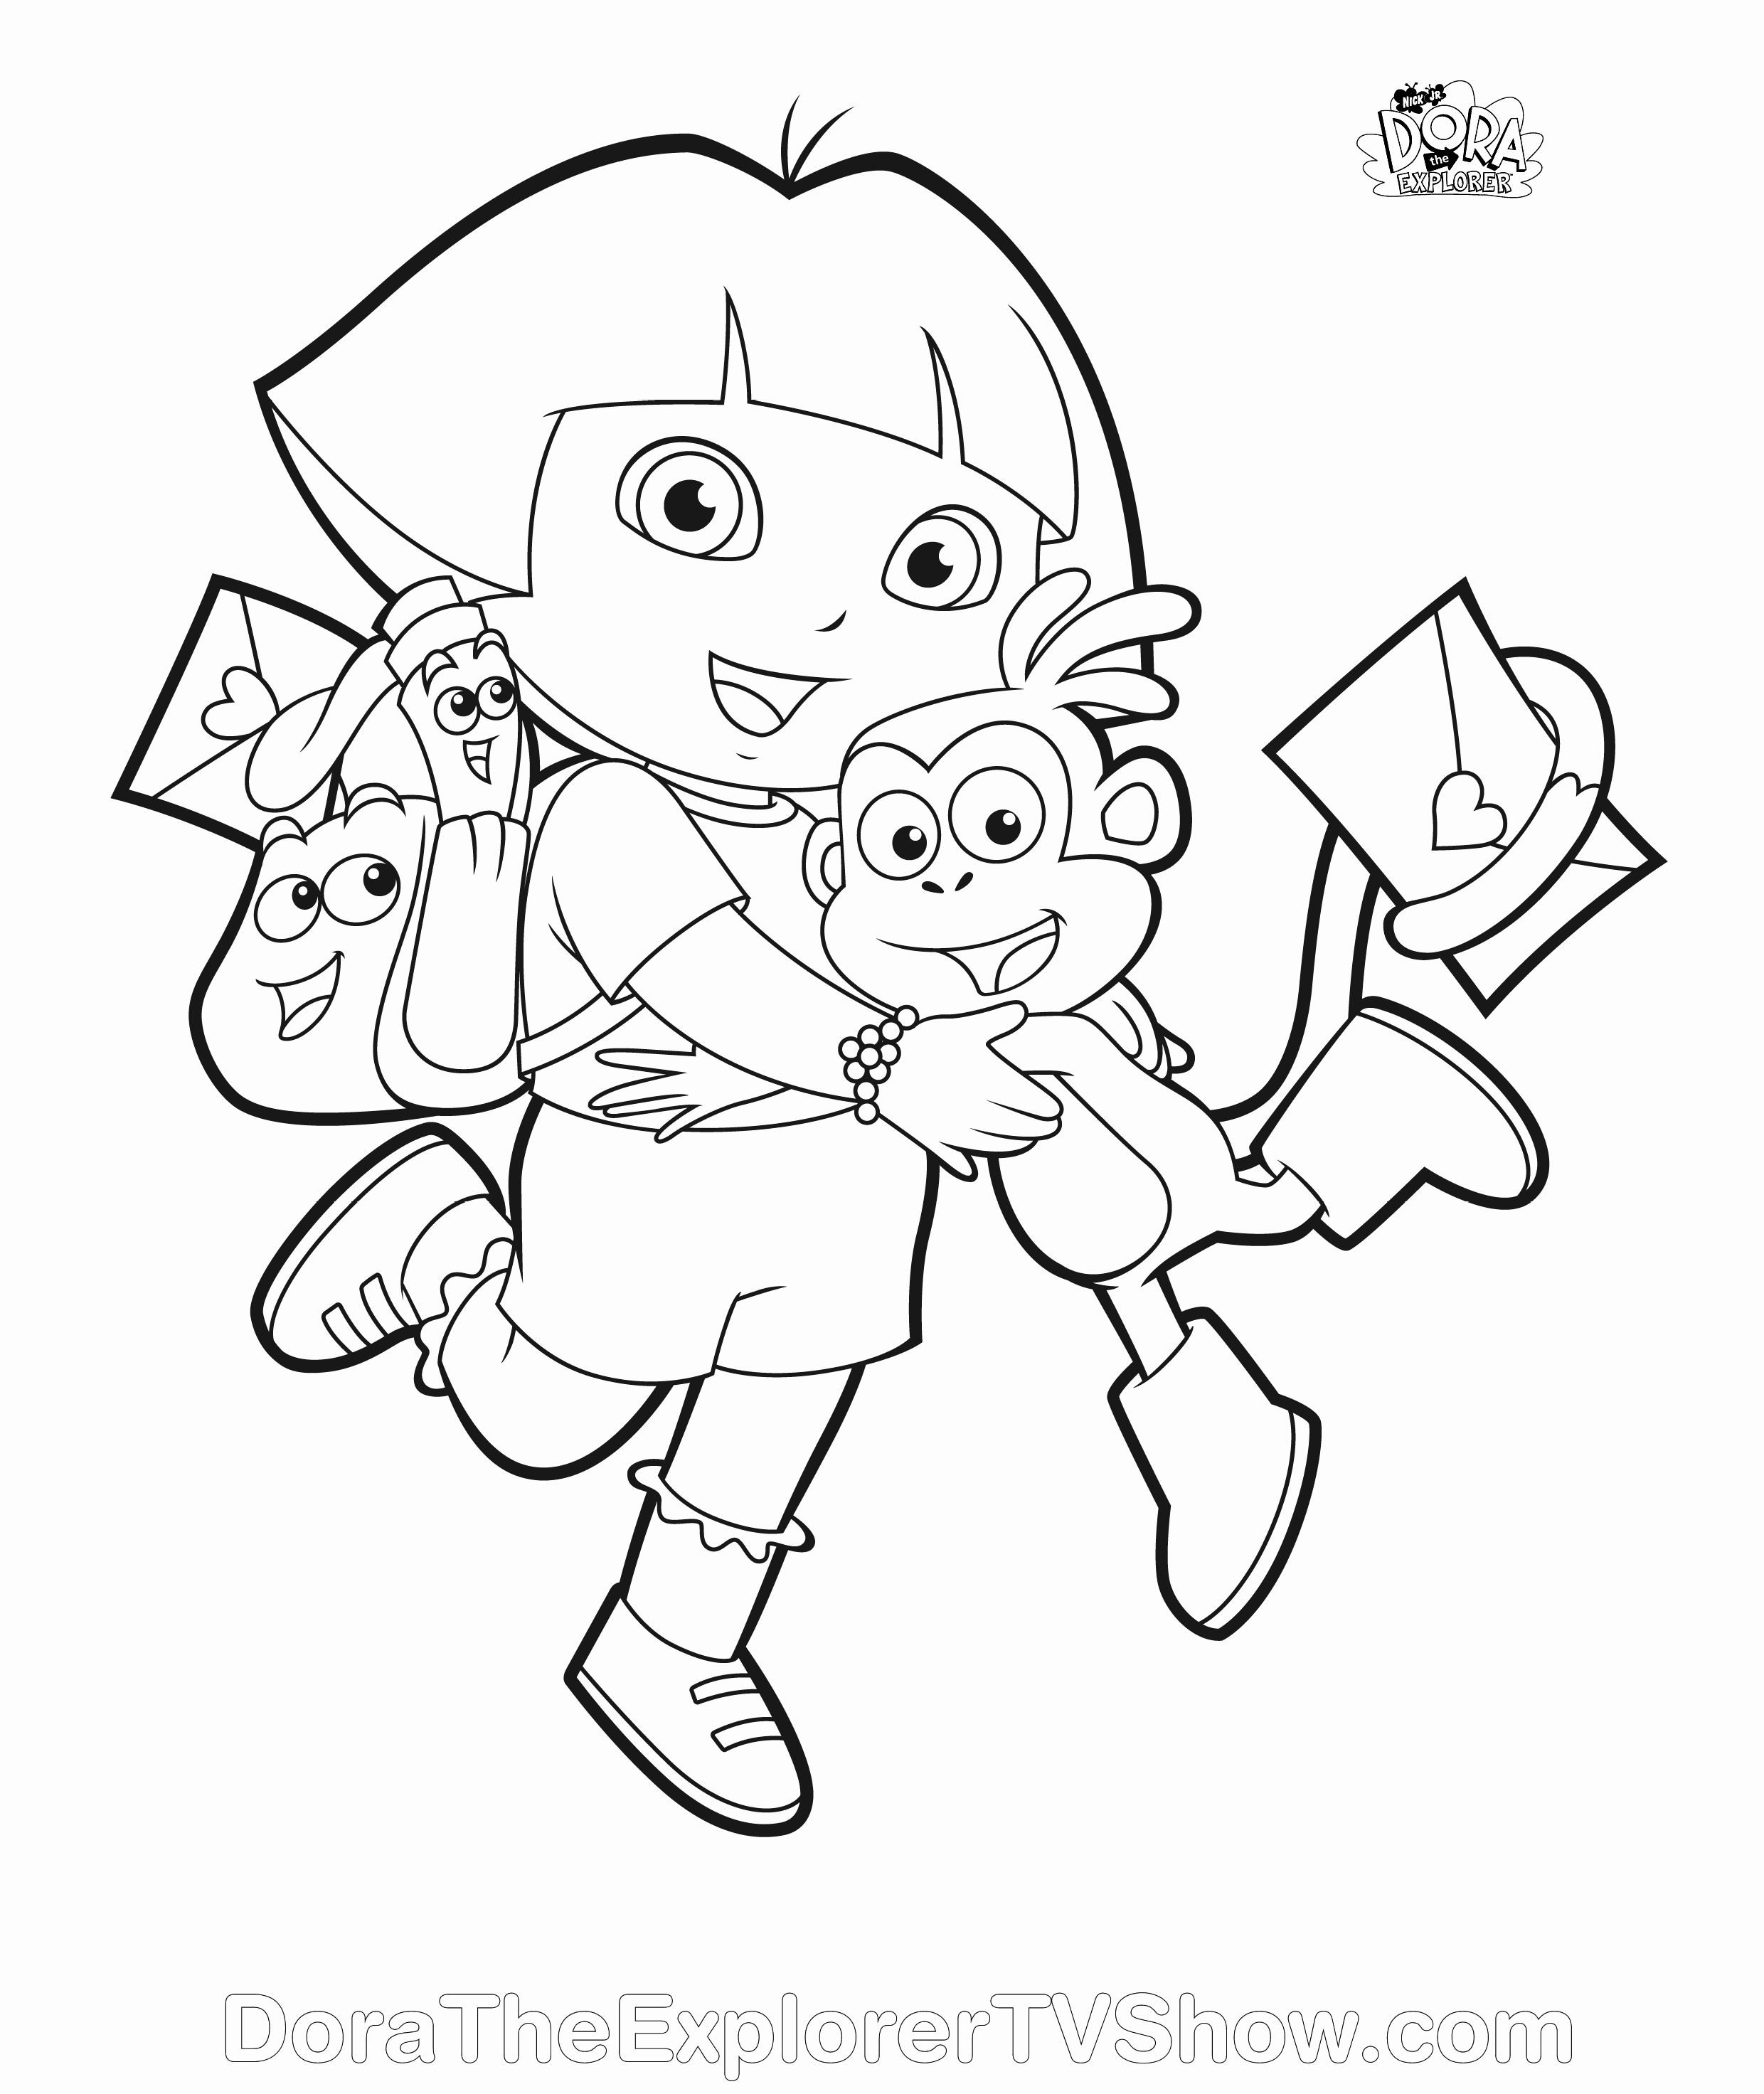 Disney Drawing Book Dora Elegant Dora Animals Castle Coloring Page And Wecoloringpage In 2020 Dora Coloring Coloring Pages Dora The Explorer